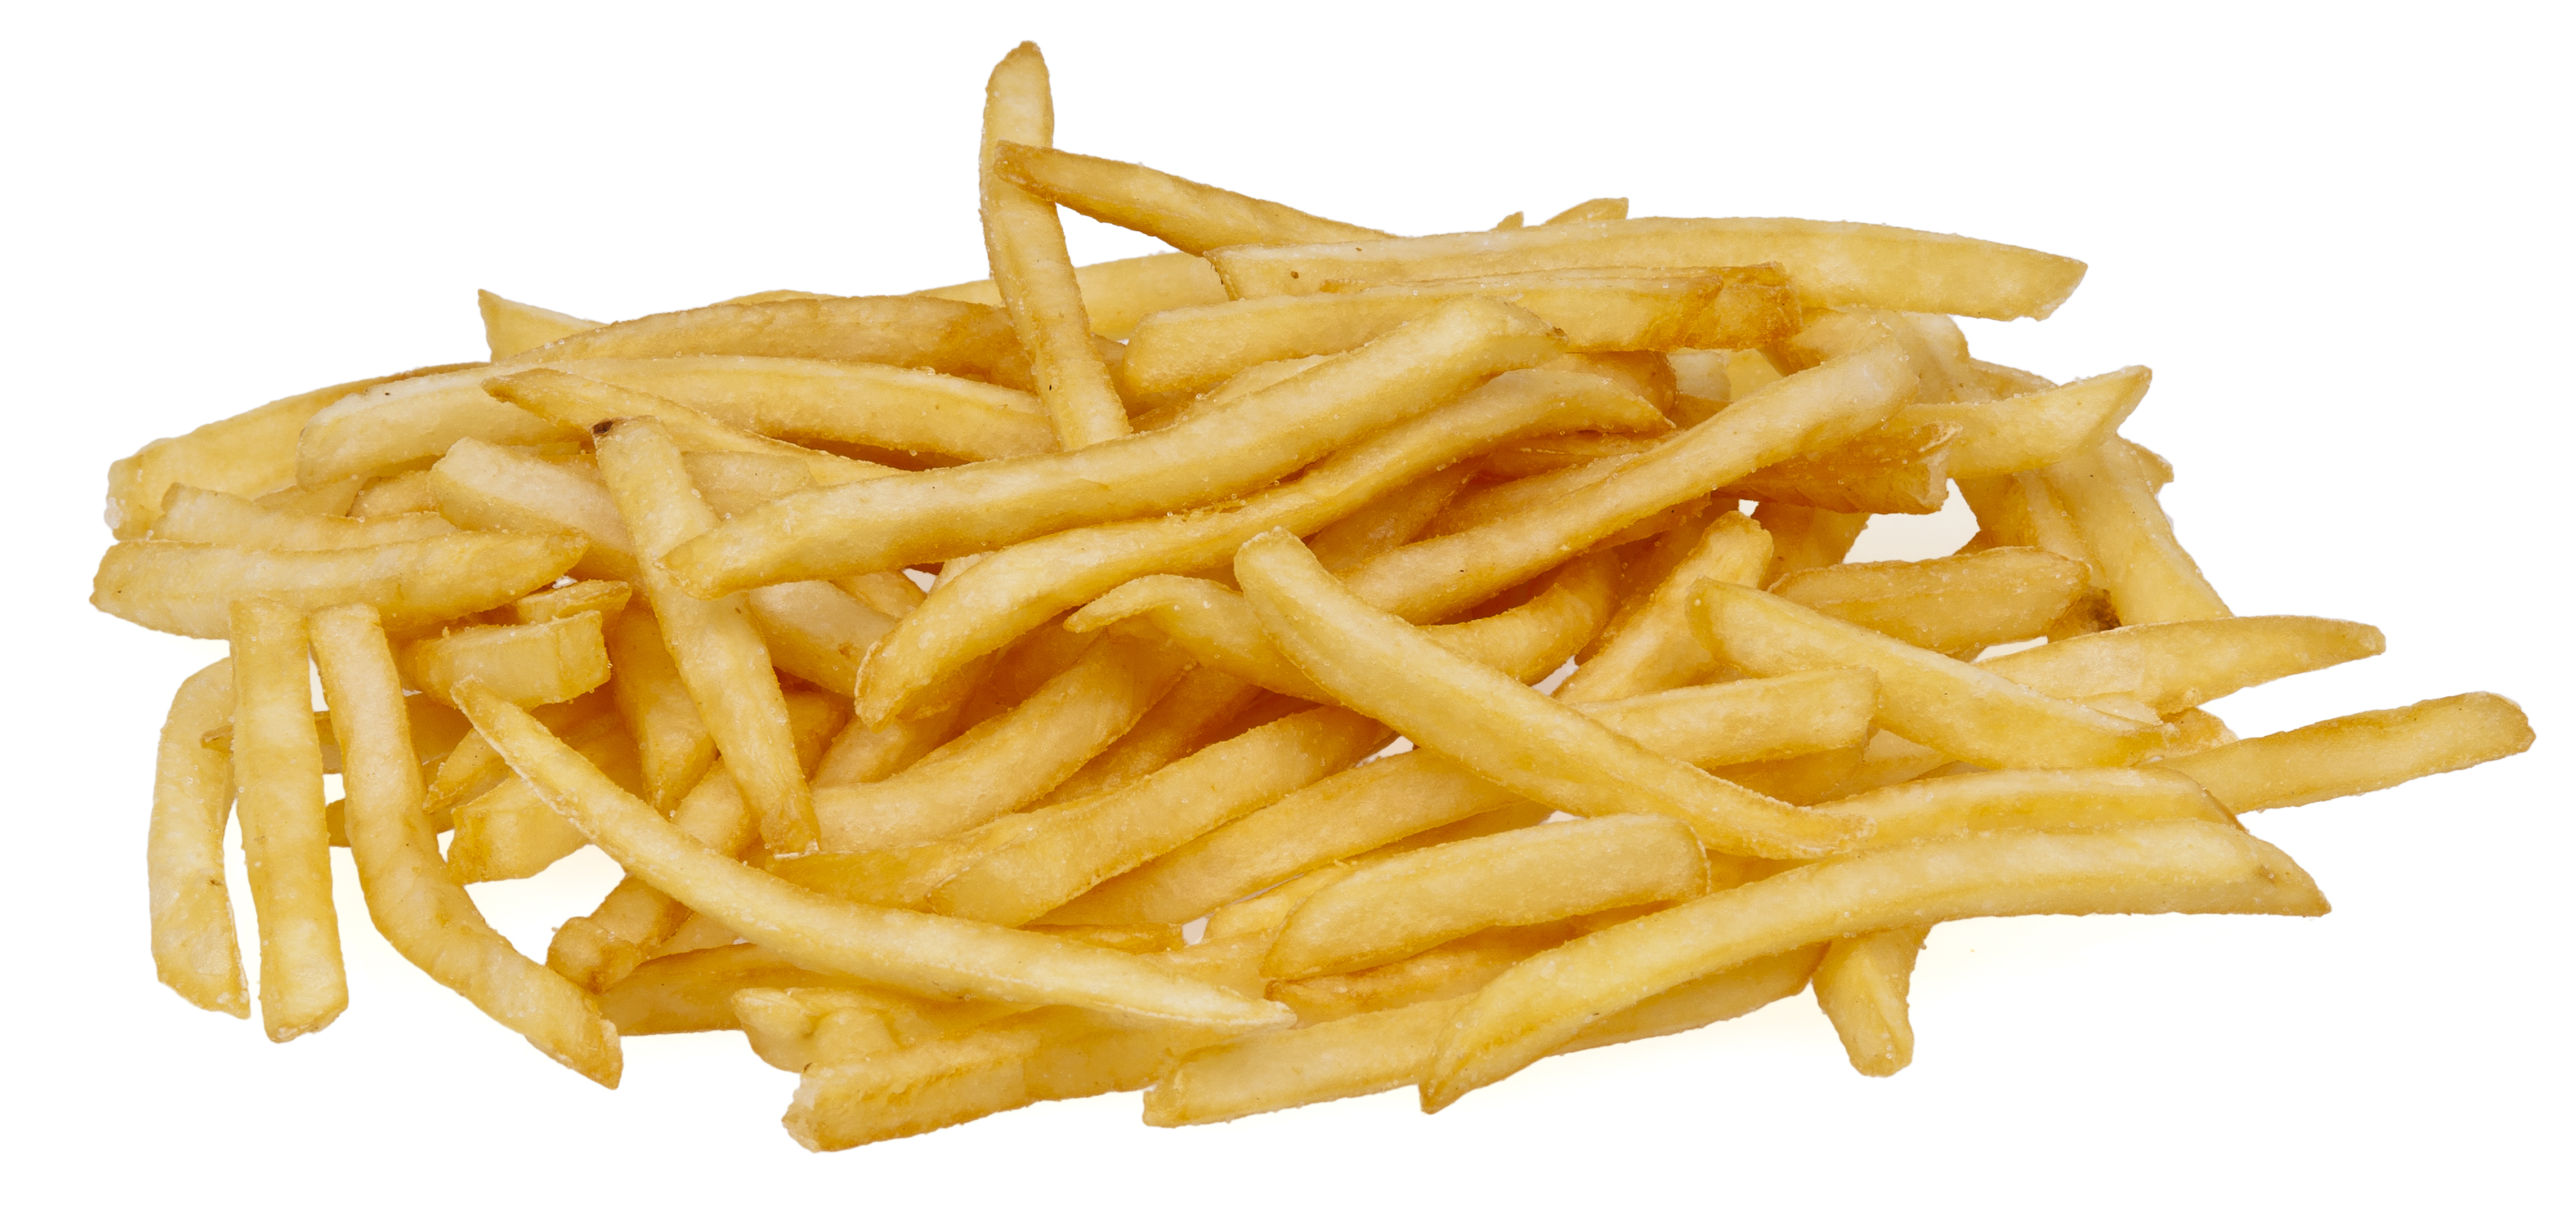 File:McDonalds-French-Fries-Plate.jpg - Wikimedia Commons